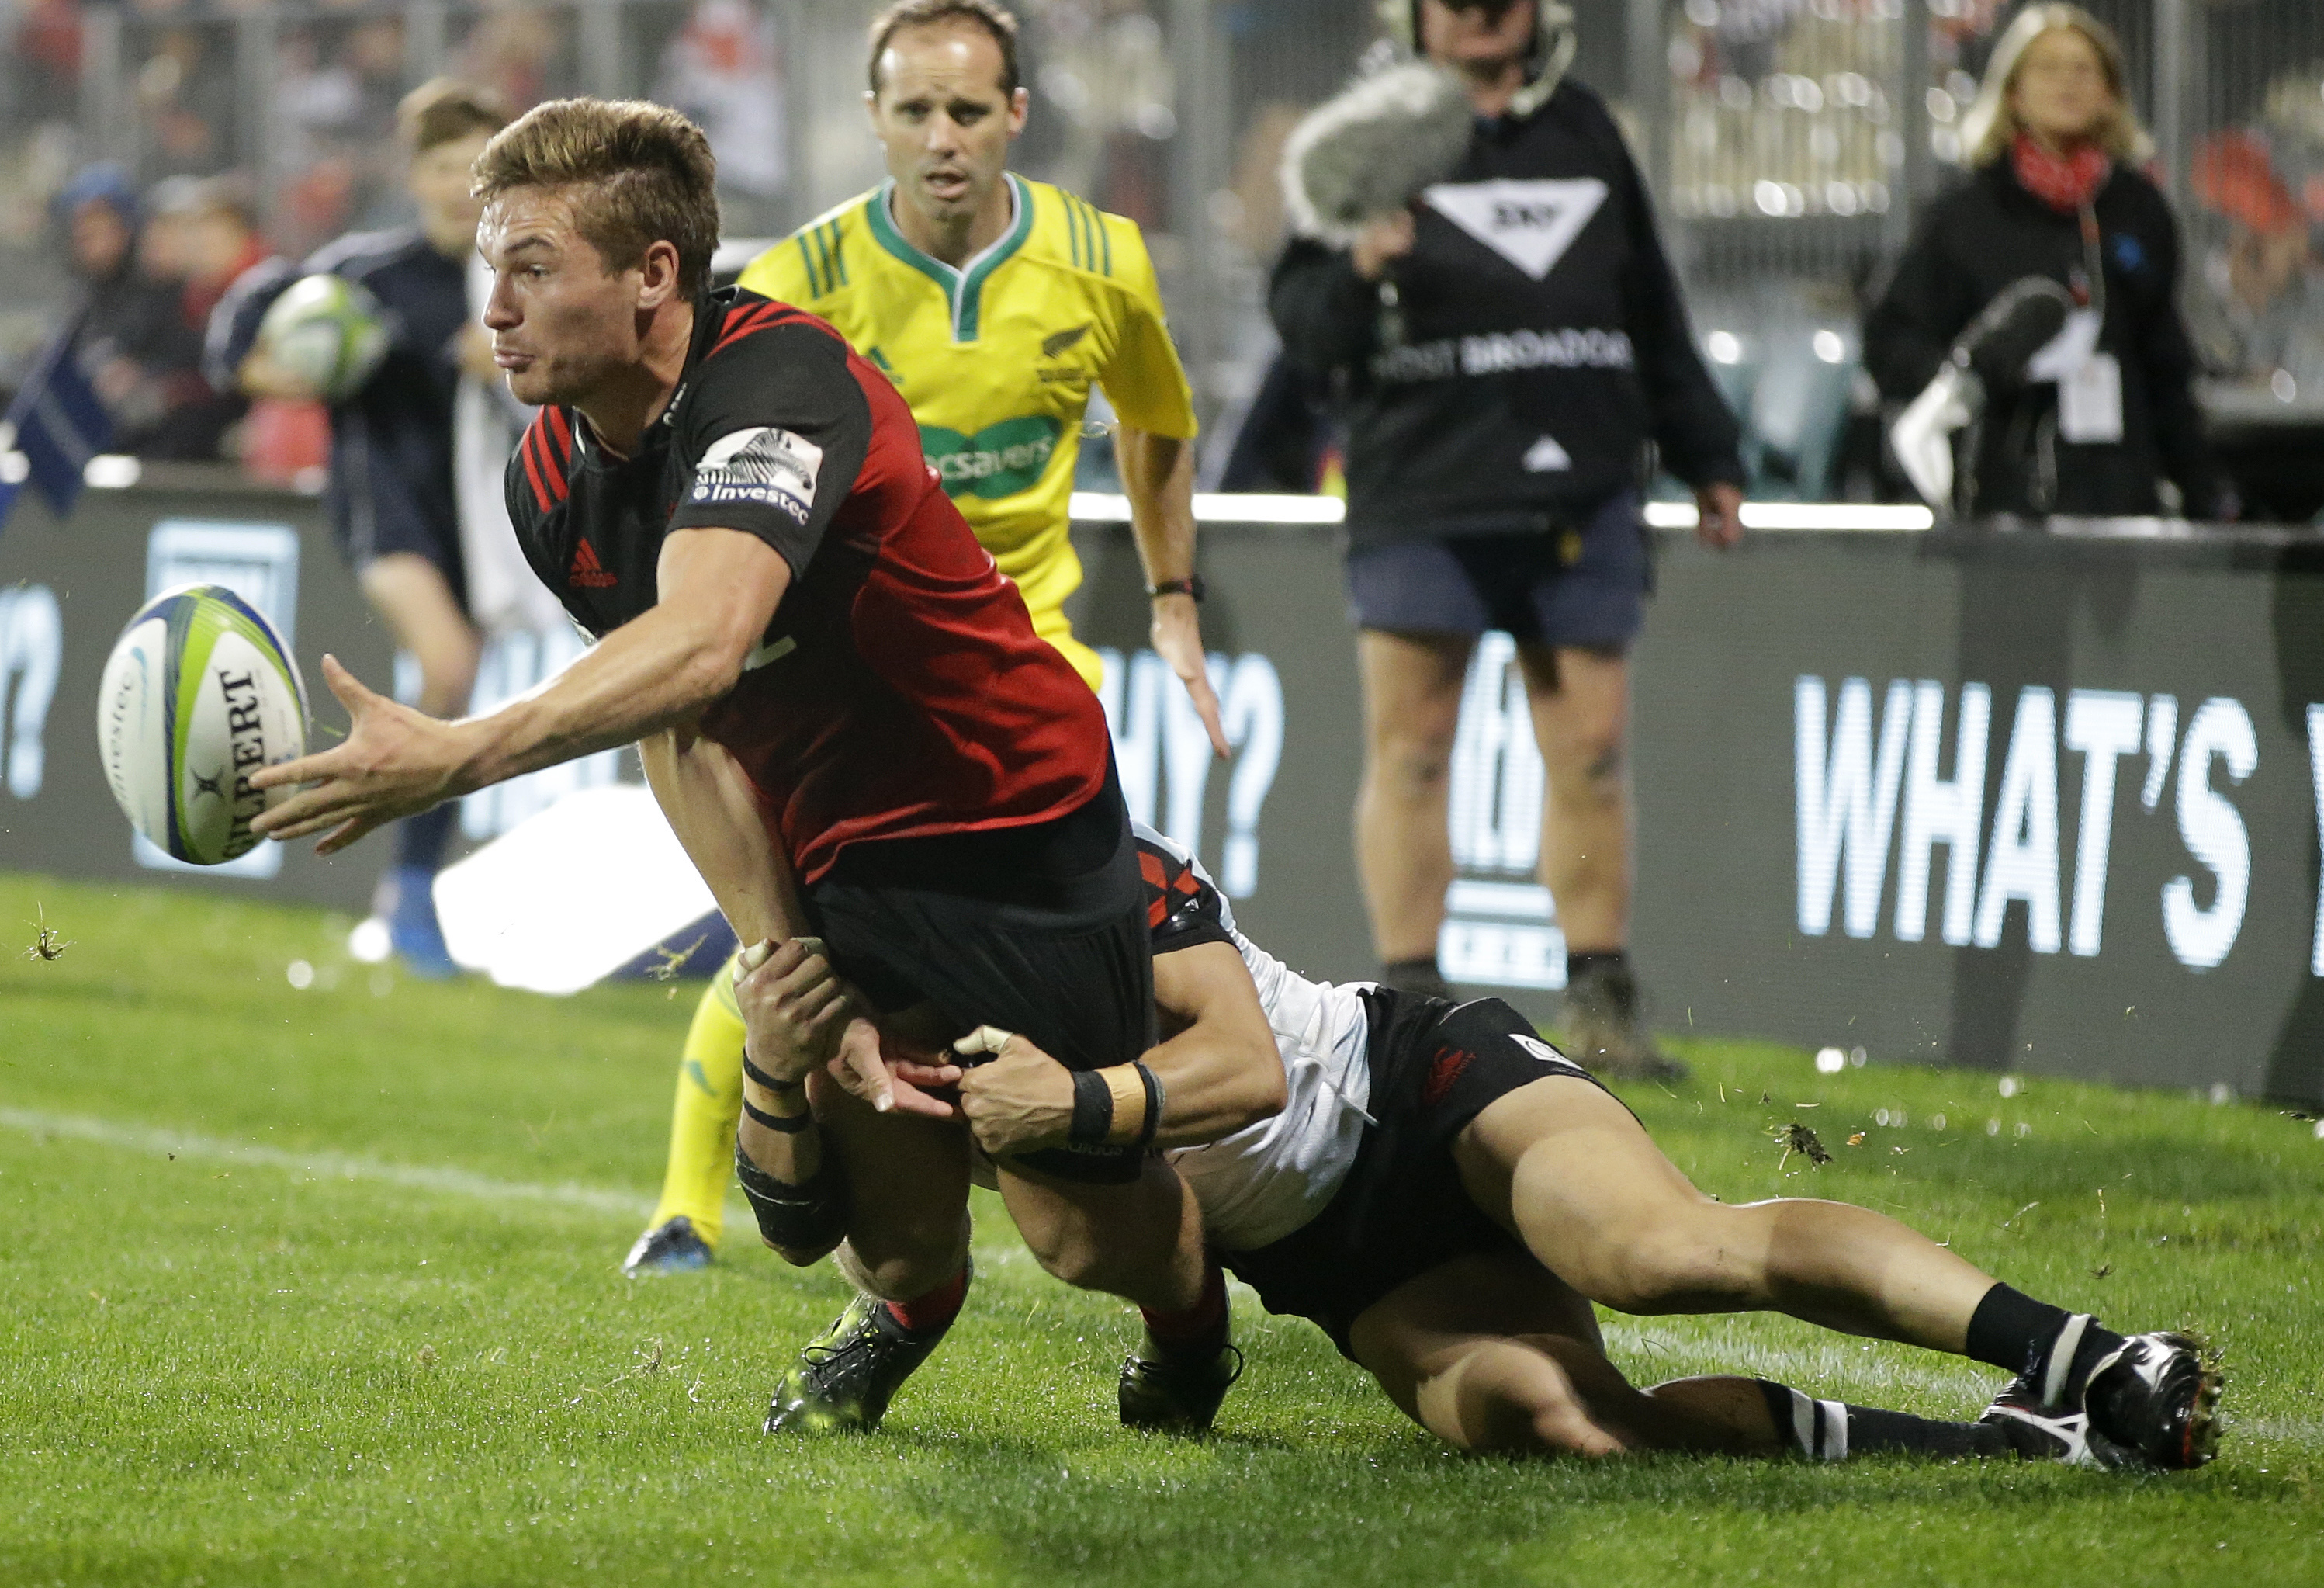 Crusaders George Bridge passes the ball as he is tackled by Sunwolves Takaaki Nakazuru during their Super Rugby match in Christchurch, New Zealand, Friday, April 14. (AP Photo/Mark Baker)